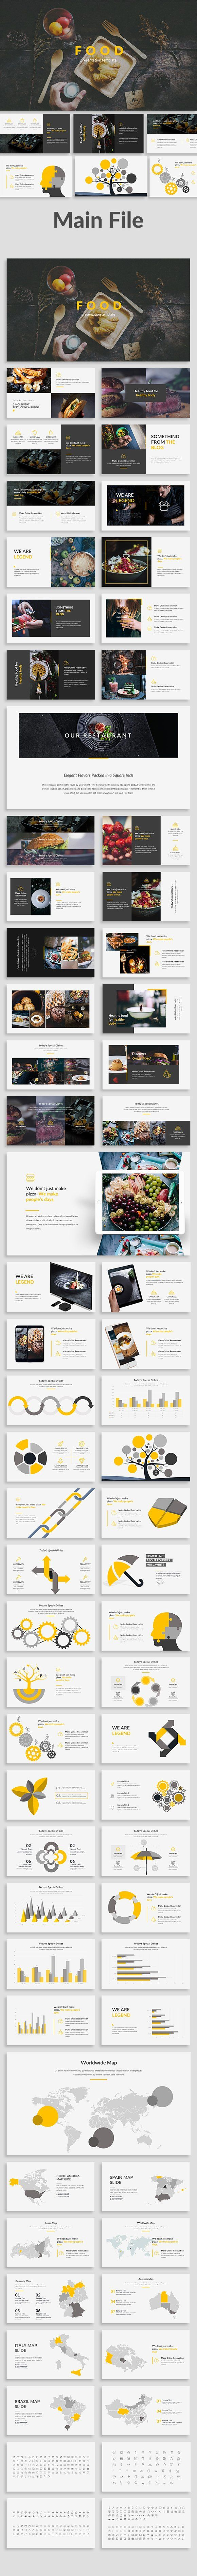 The Food Keynote Template by Zin Studio on @creativemarket